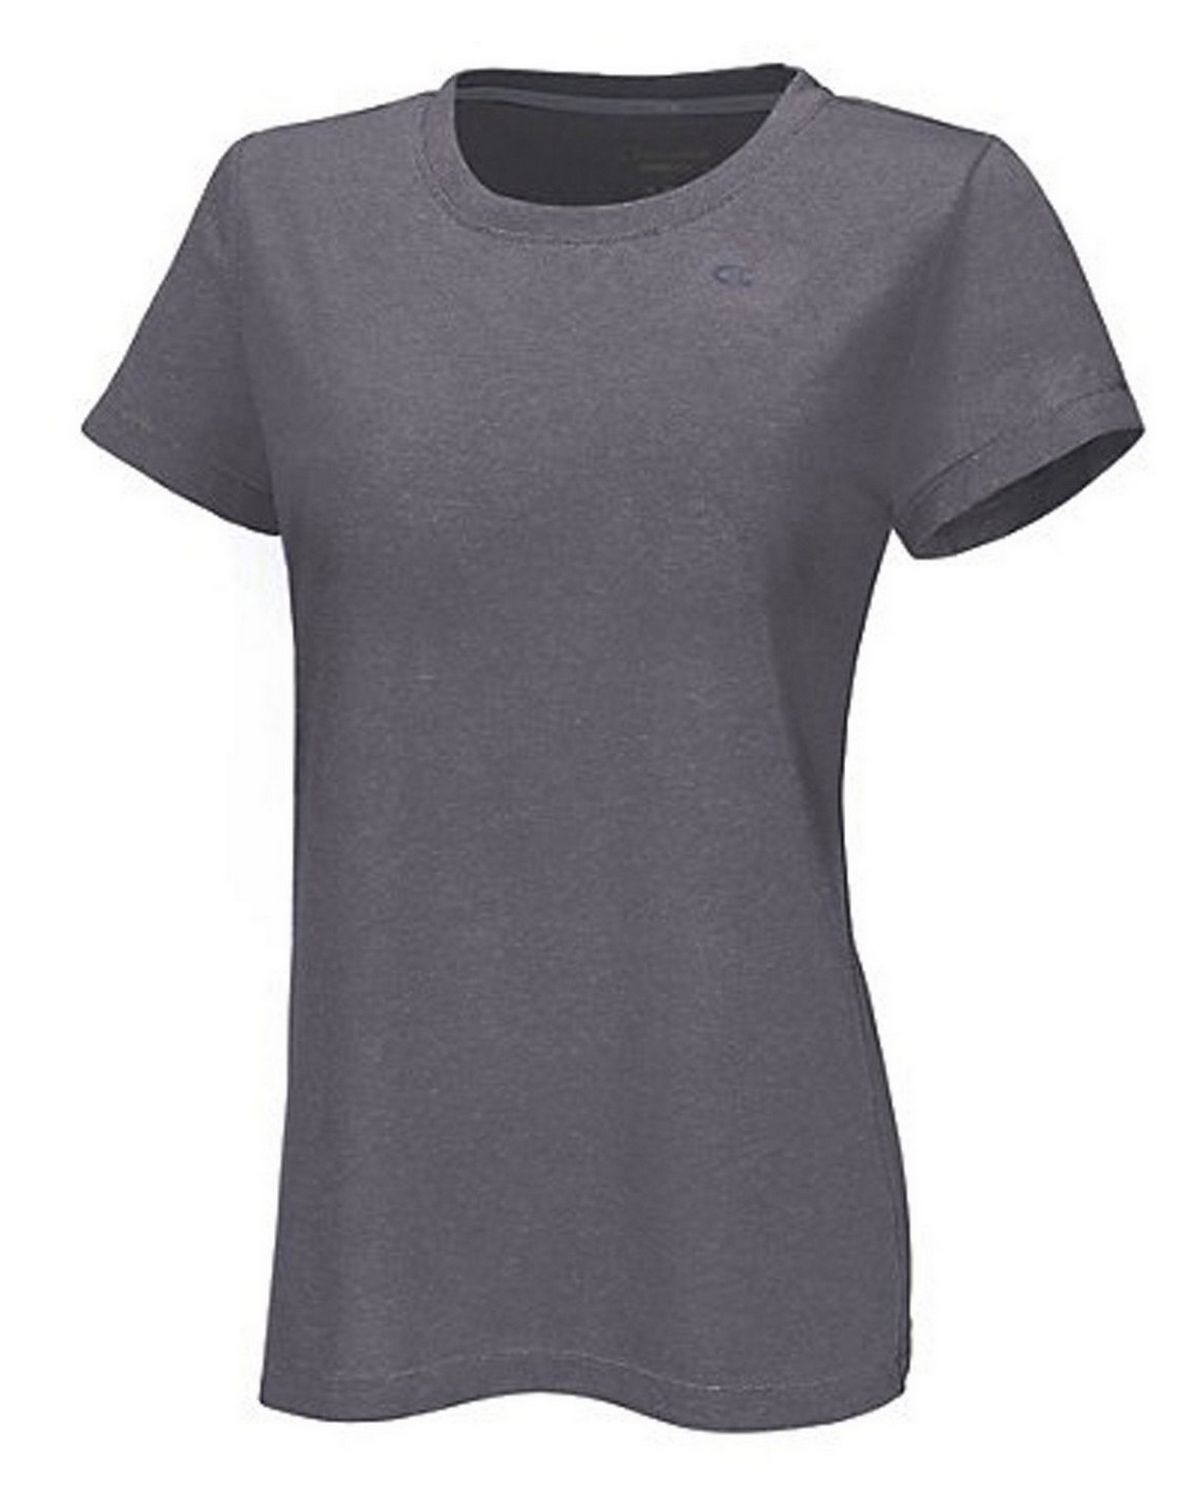 Champion 7963 Vapor PowerTrain Short Sleeve Heather Tee - Granite Heather - M 7963